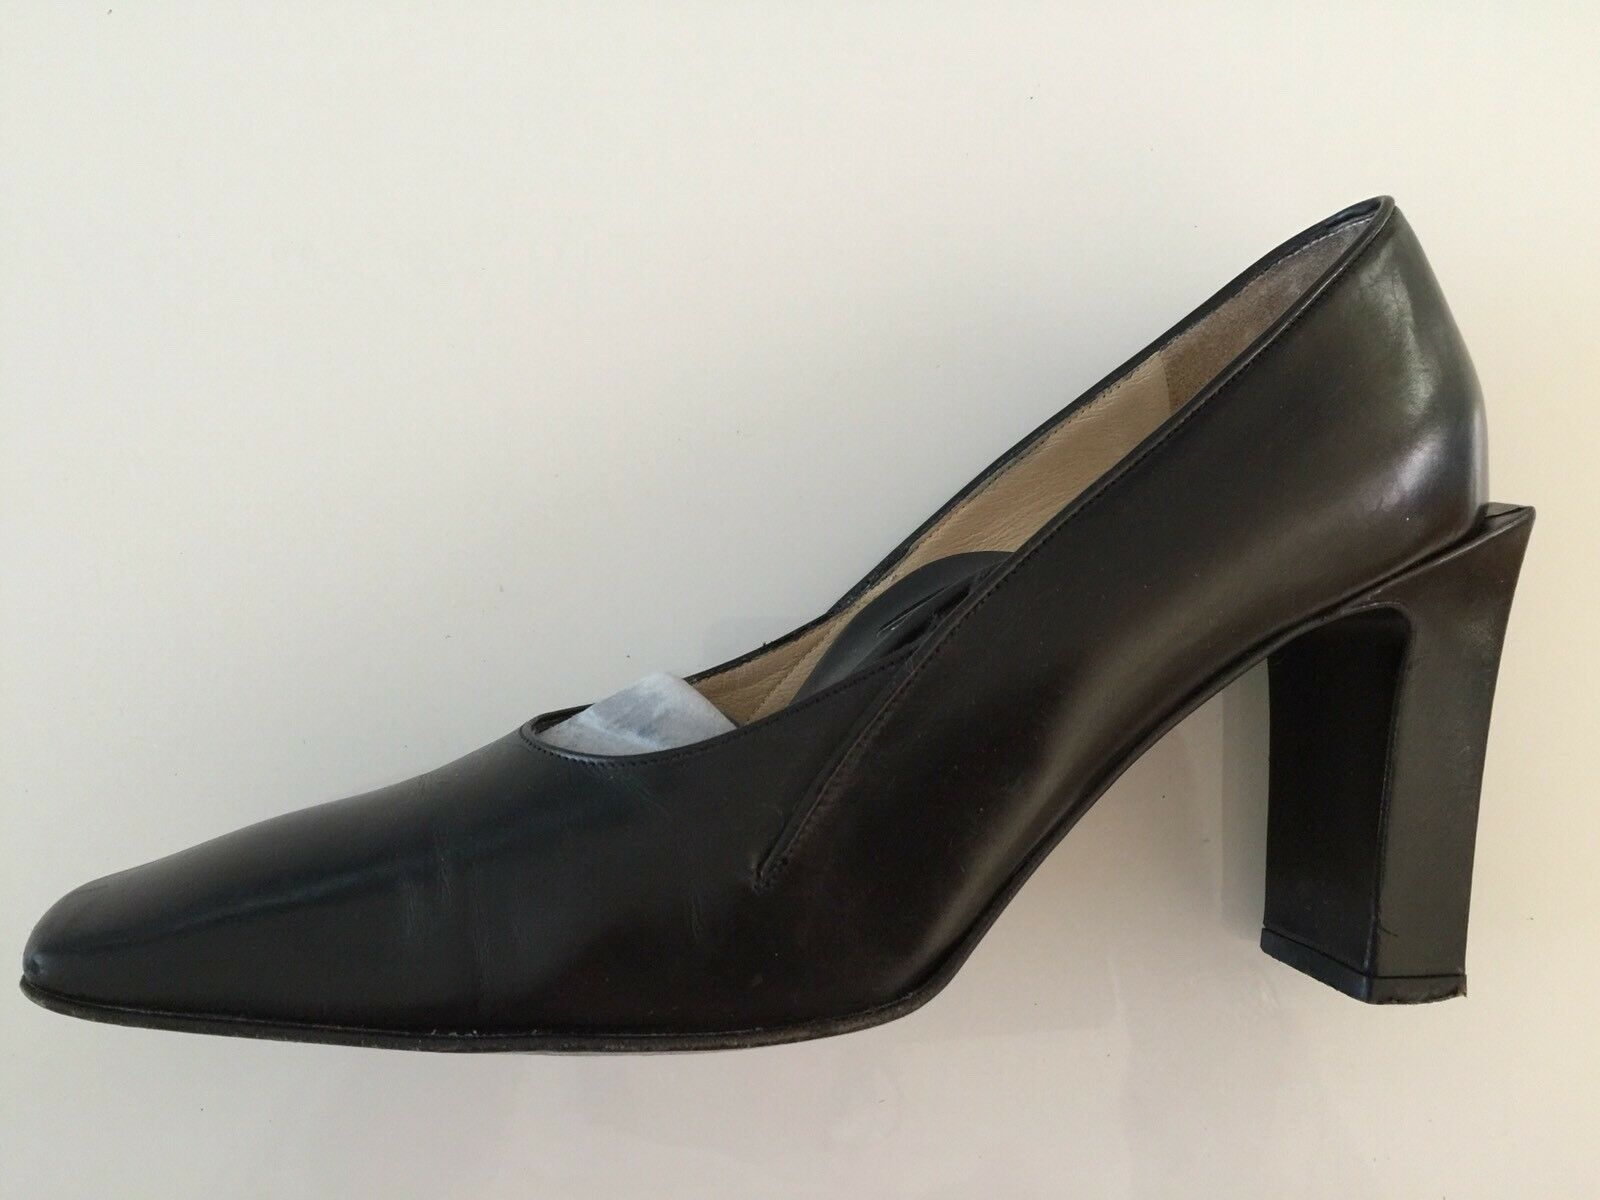 Ladies Shoes Size 5.5 BALLY 100% Formal Leather 3.5